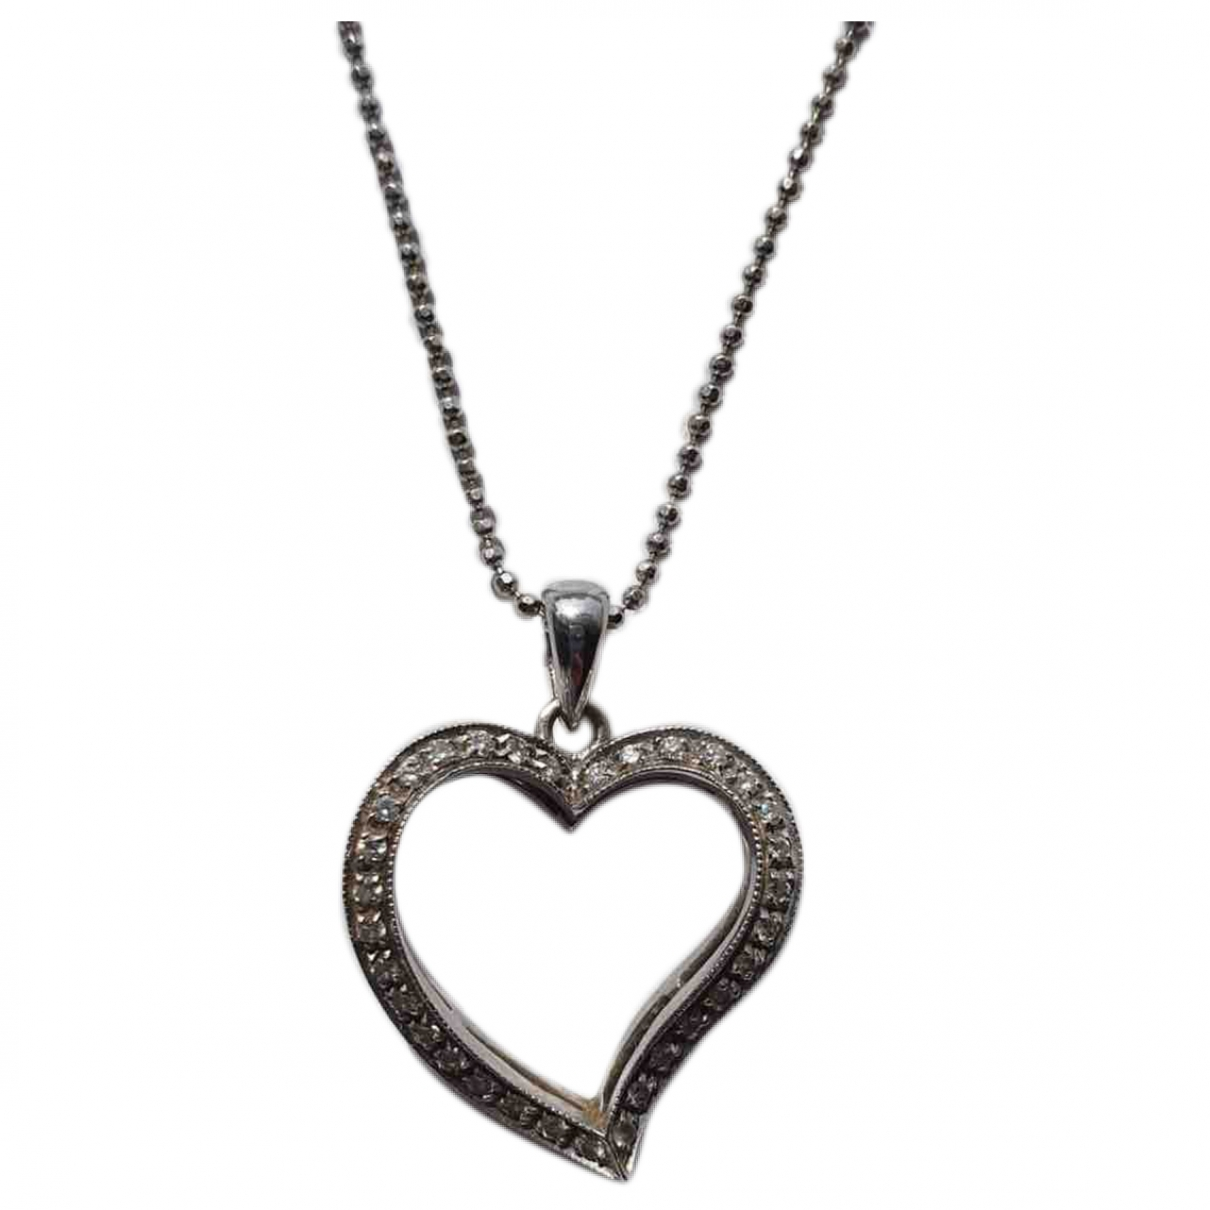 Salvini \N Silver White gold necklace for Women \N